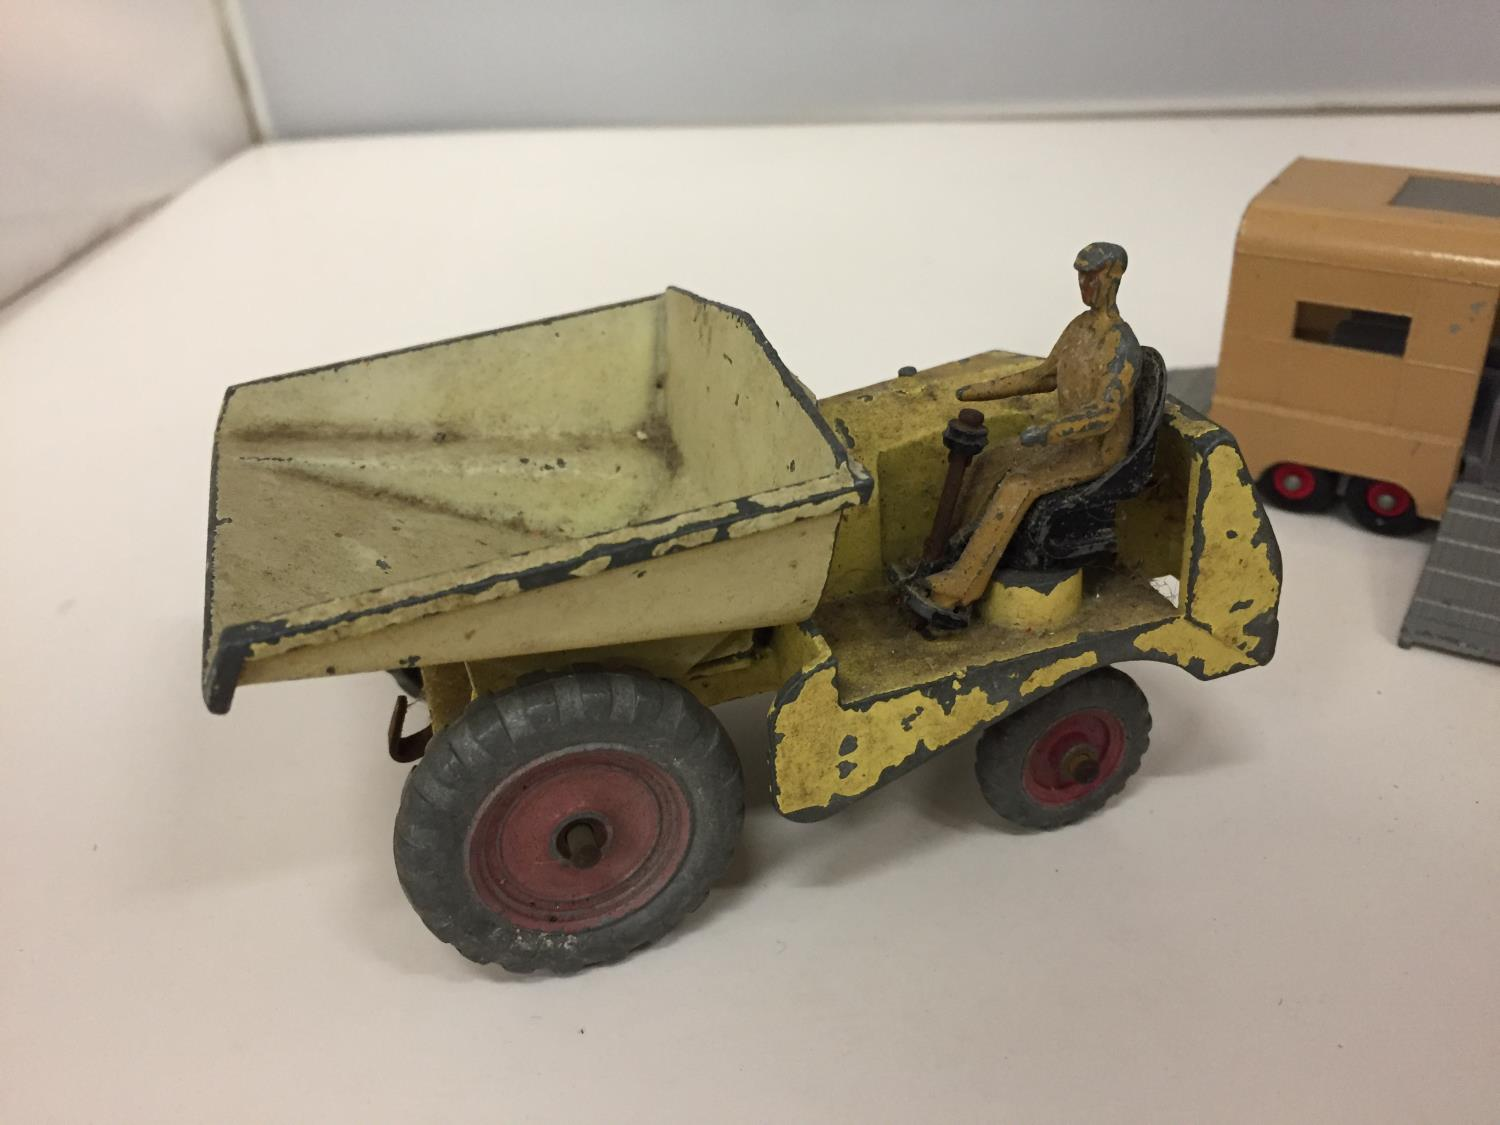 A DINKY MODEL MUIR-HILL DUMPER NO.562 1949-1954 AND A MATCH BOX KINGSIZE ARTICULATED HORSE VAN - Image 2 of 5